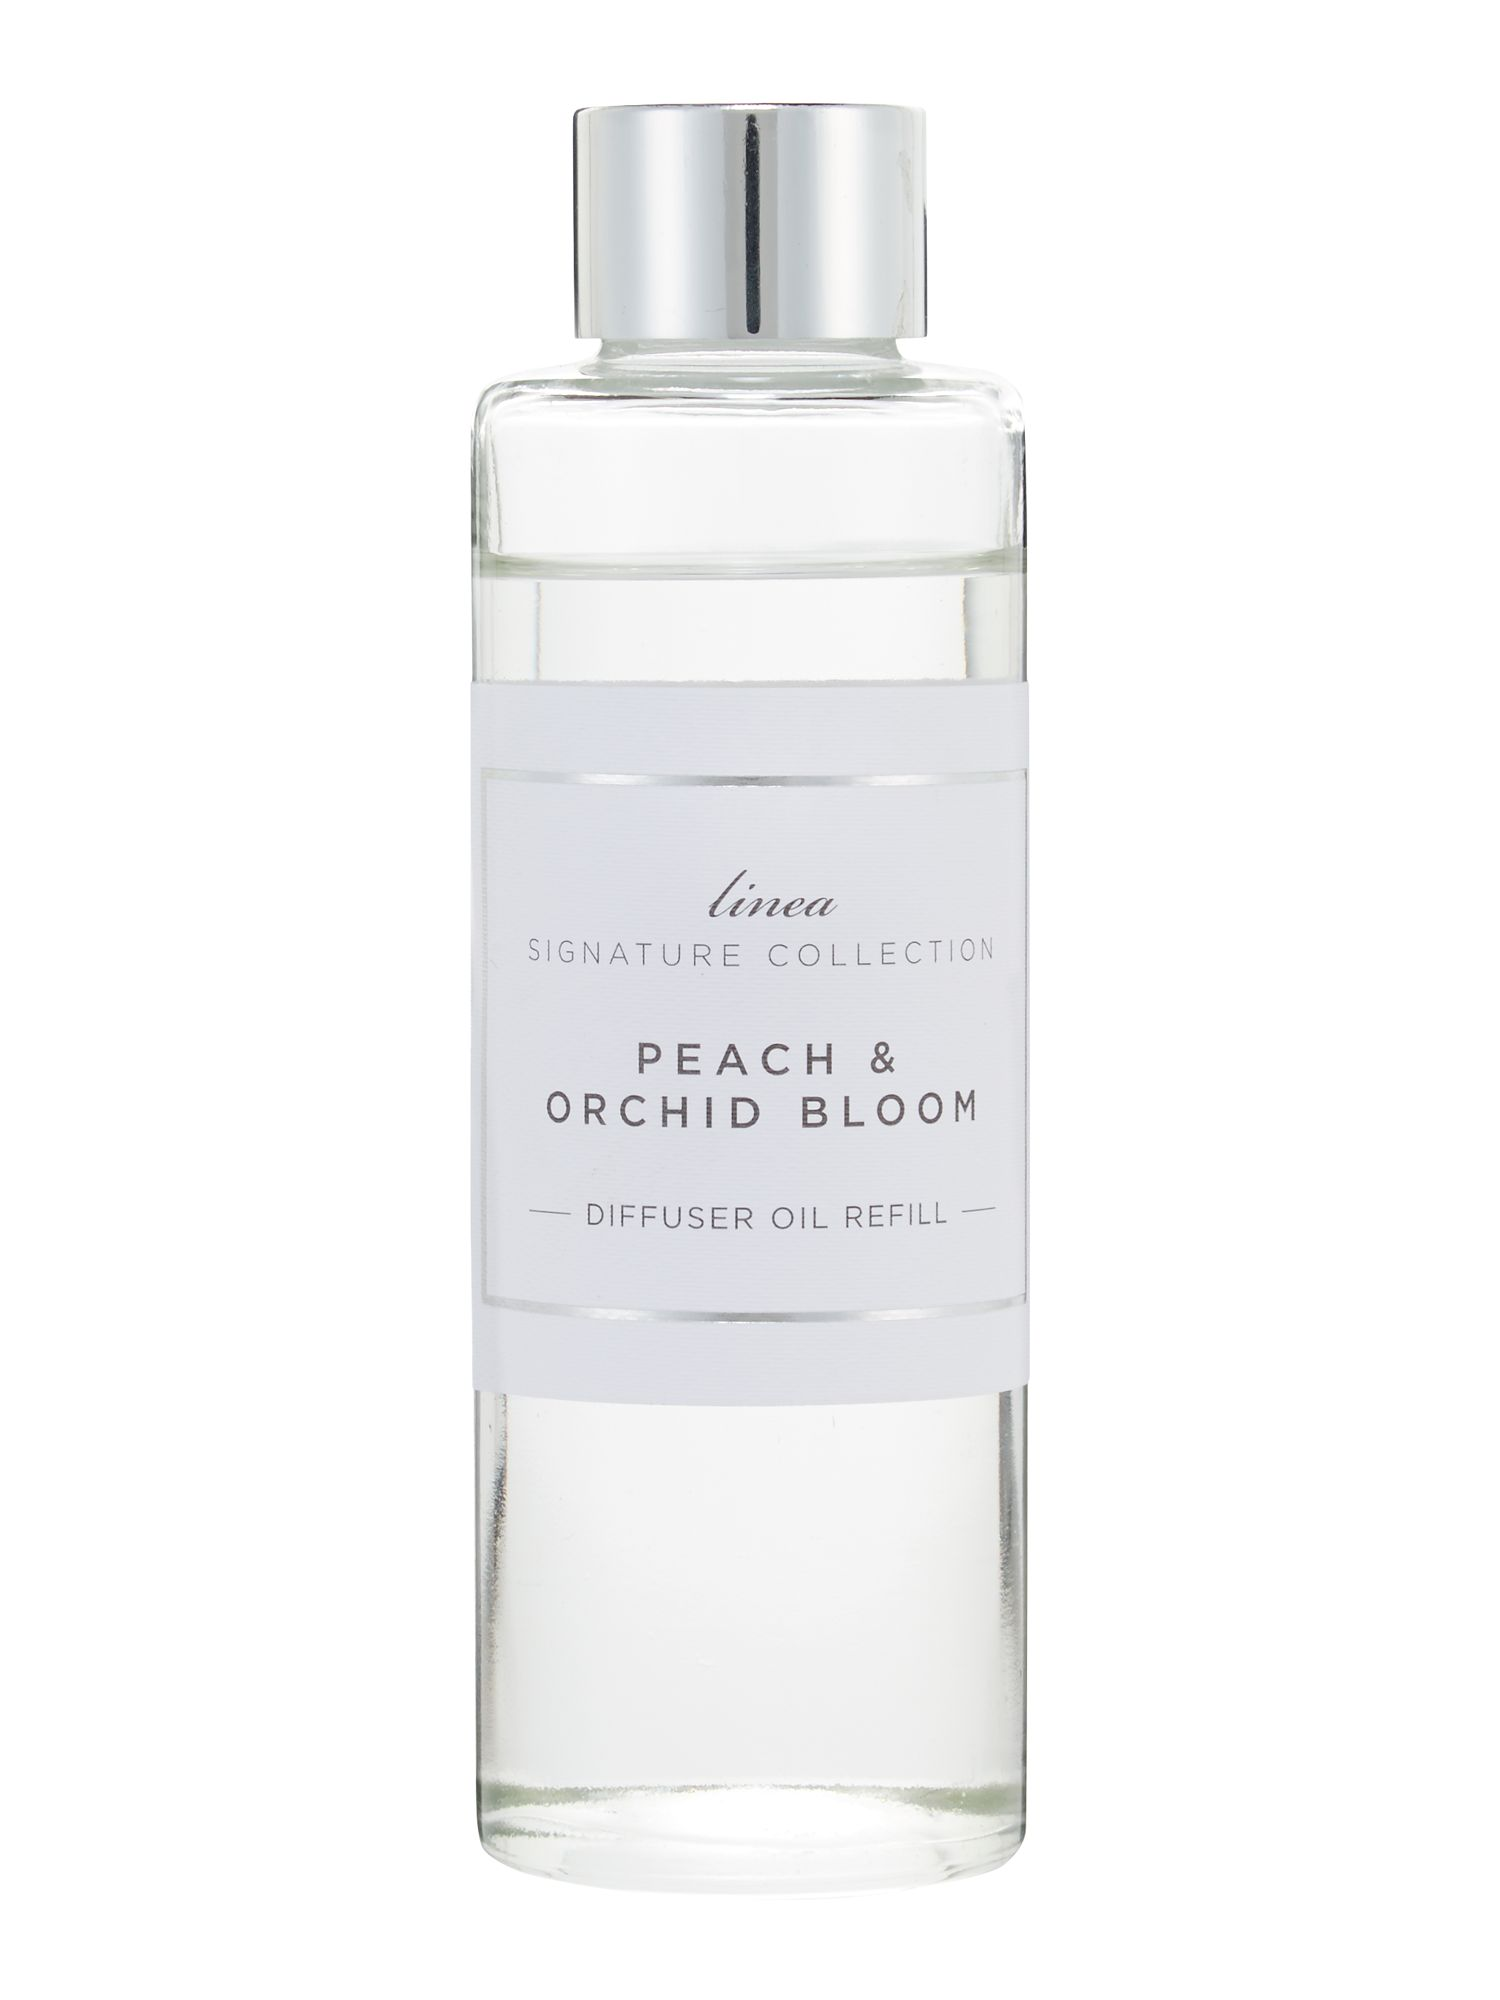 Peach & orchid bloom refill